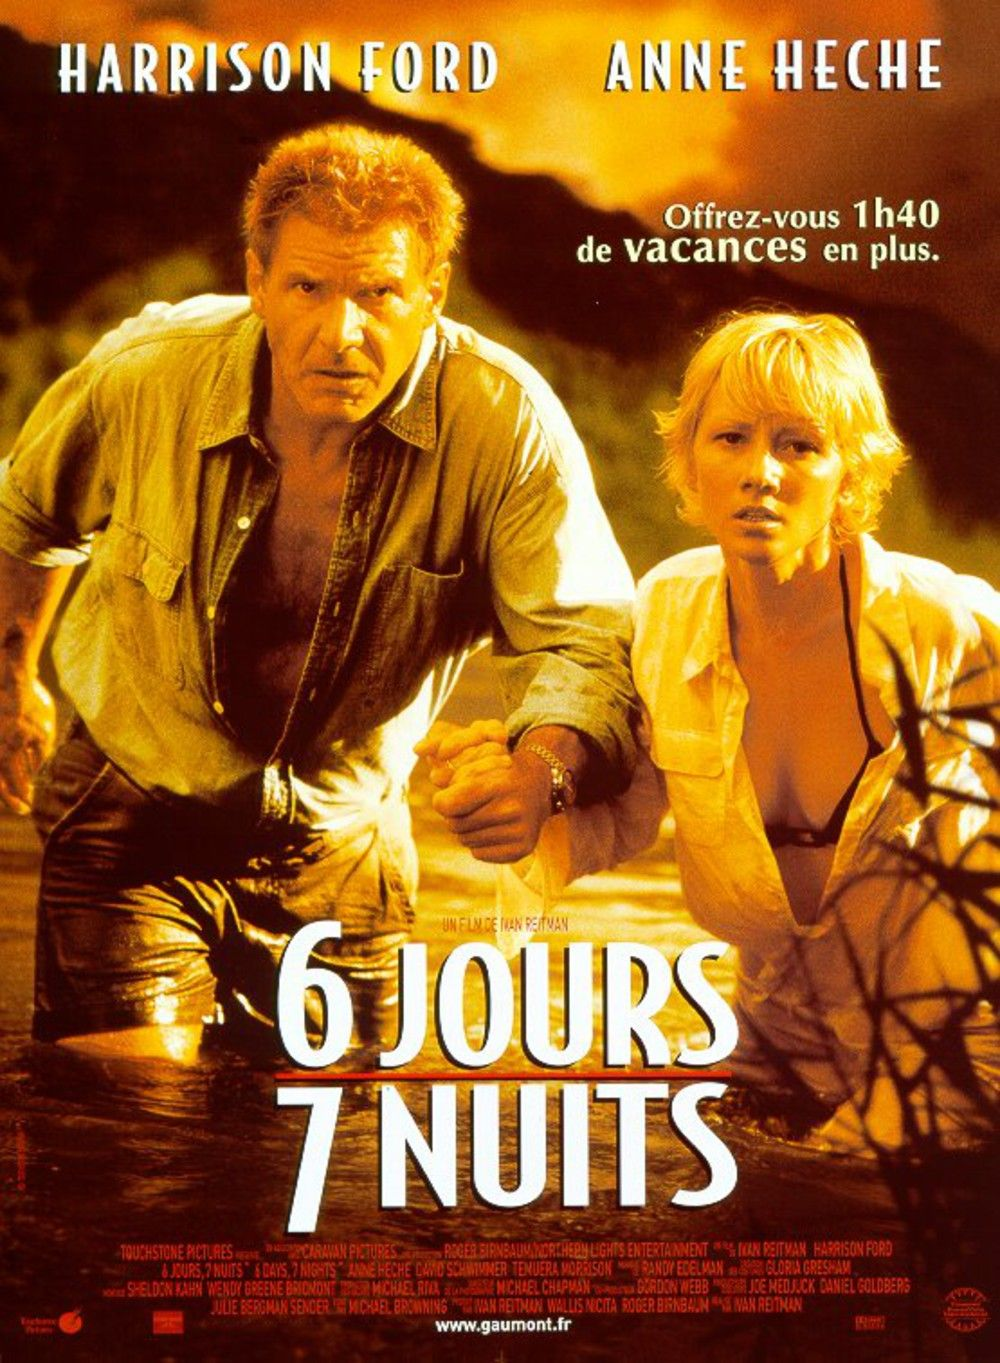 Affiche Poster 6 jours 7 nuits six days seven nights disney touchstone